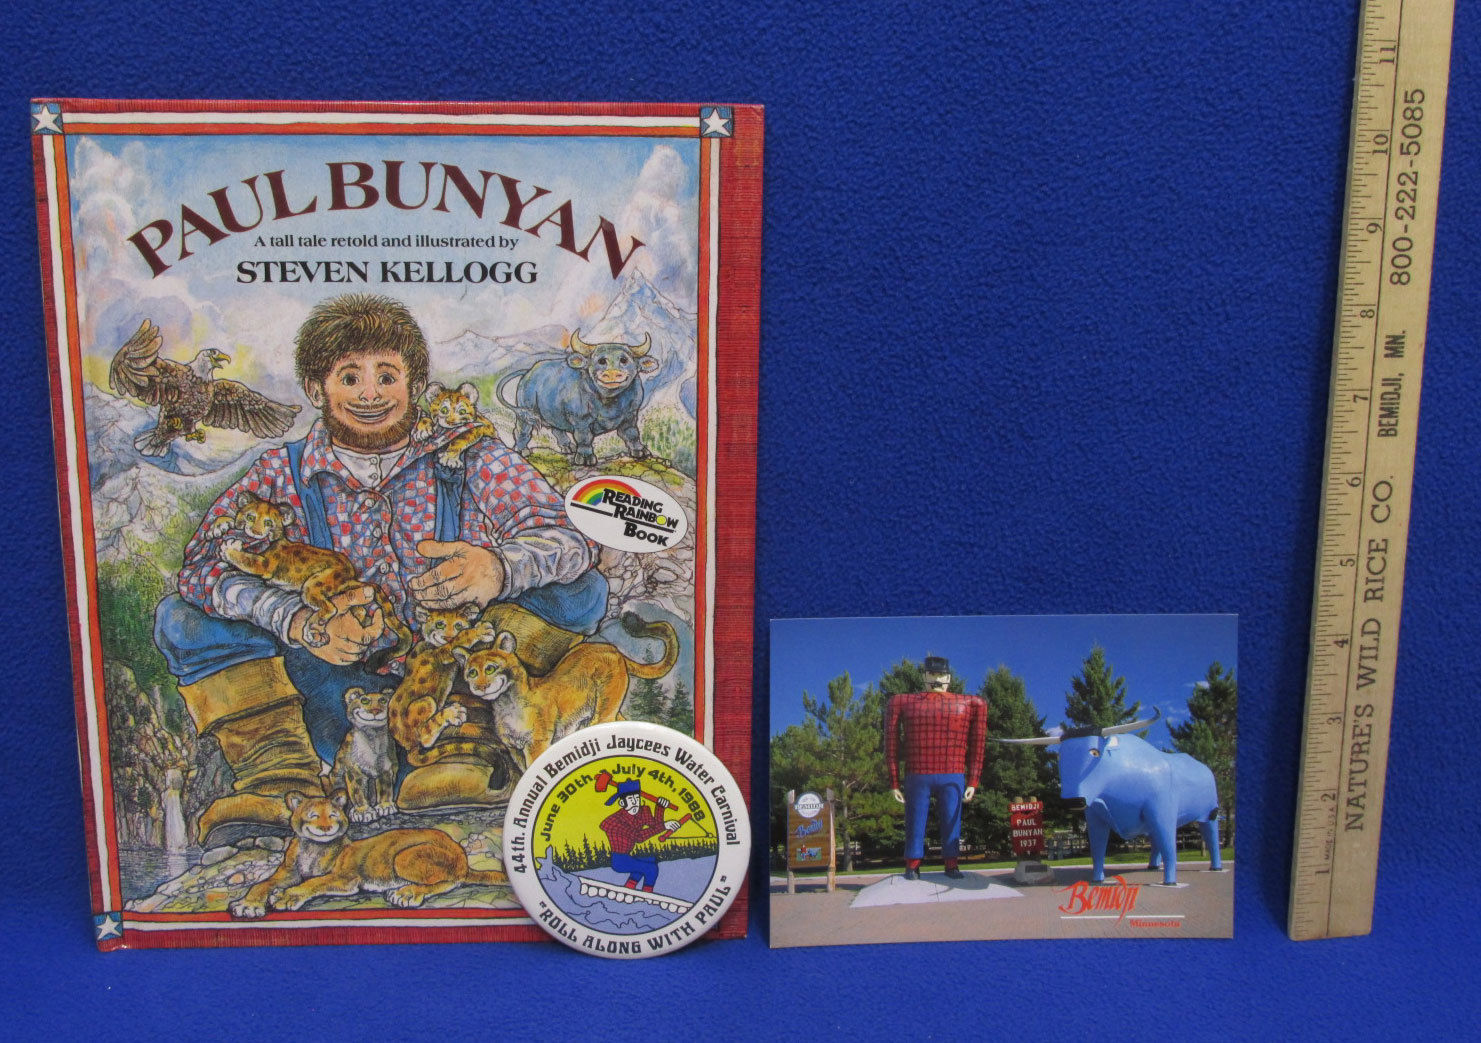 Primary image for Paul Bunyan Hardcover Book Steven Kellogg 1988 Water Carnival Button Postcard